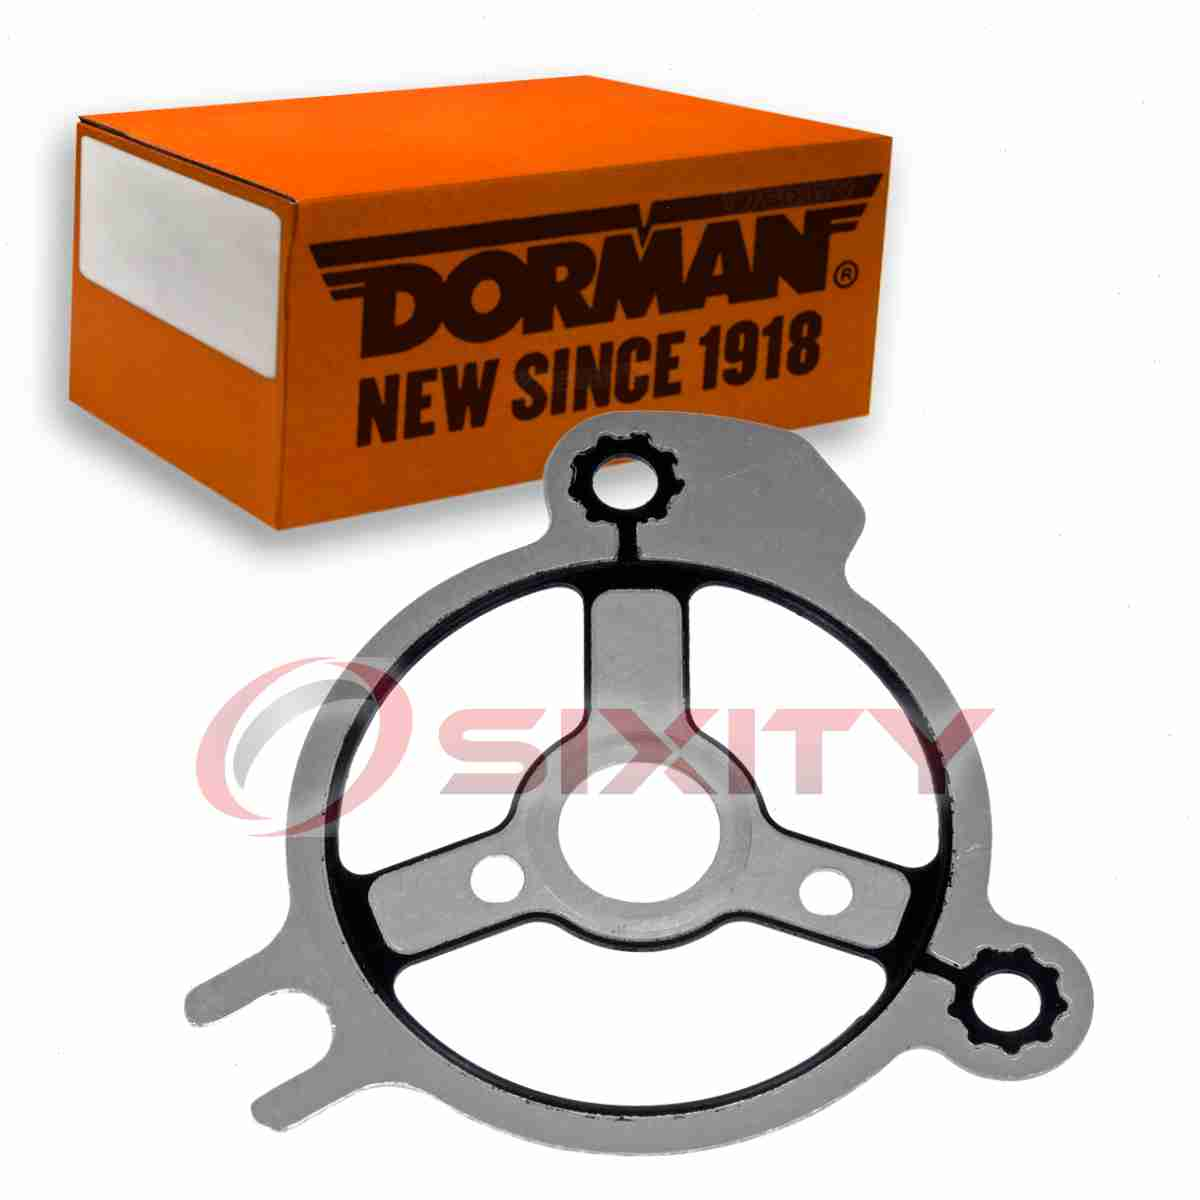 Dorman Oil Filter Adapter Gasket For Chevy Equinox 2005